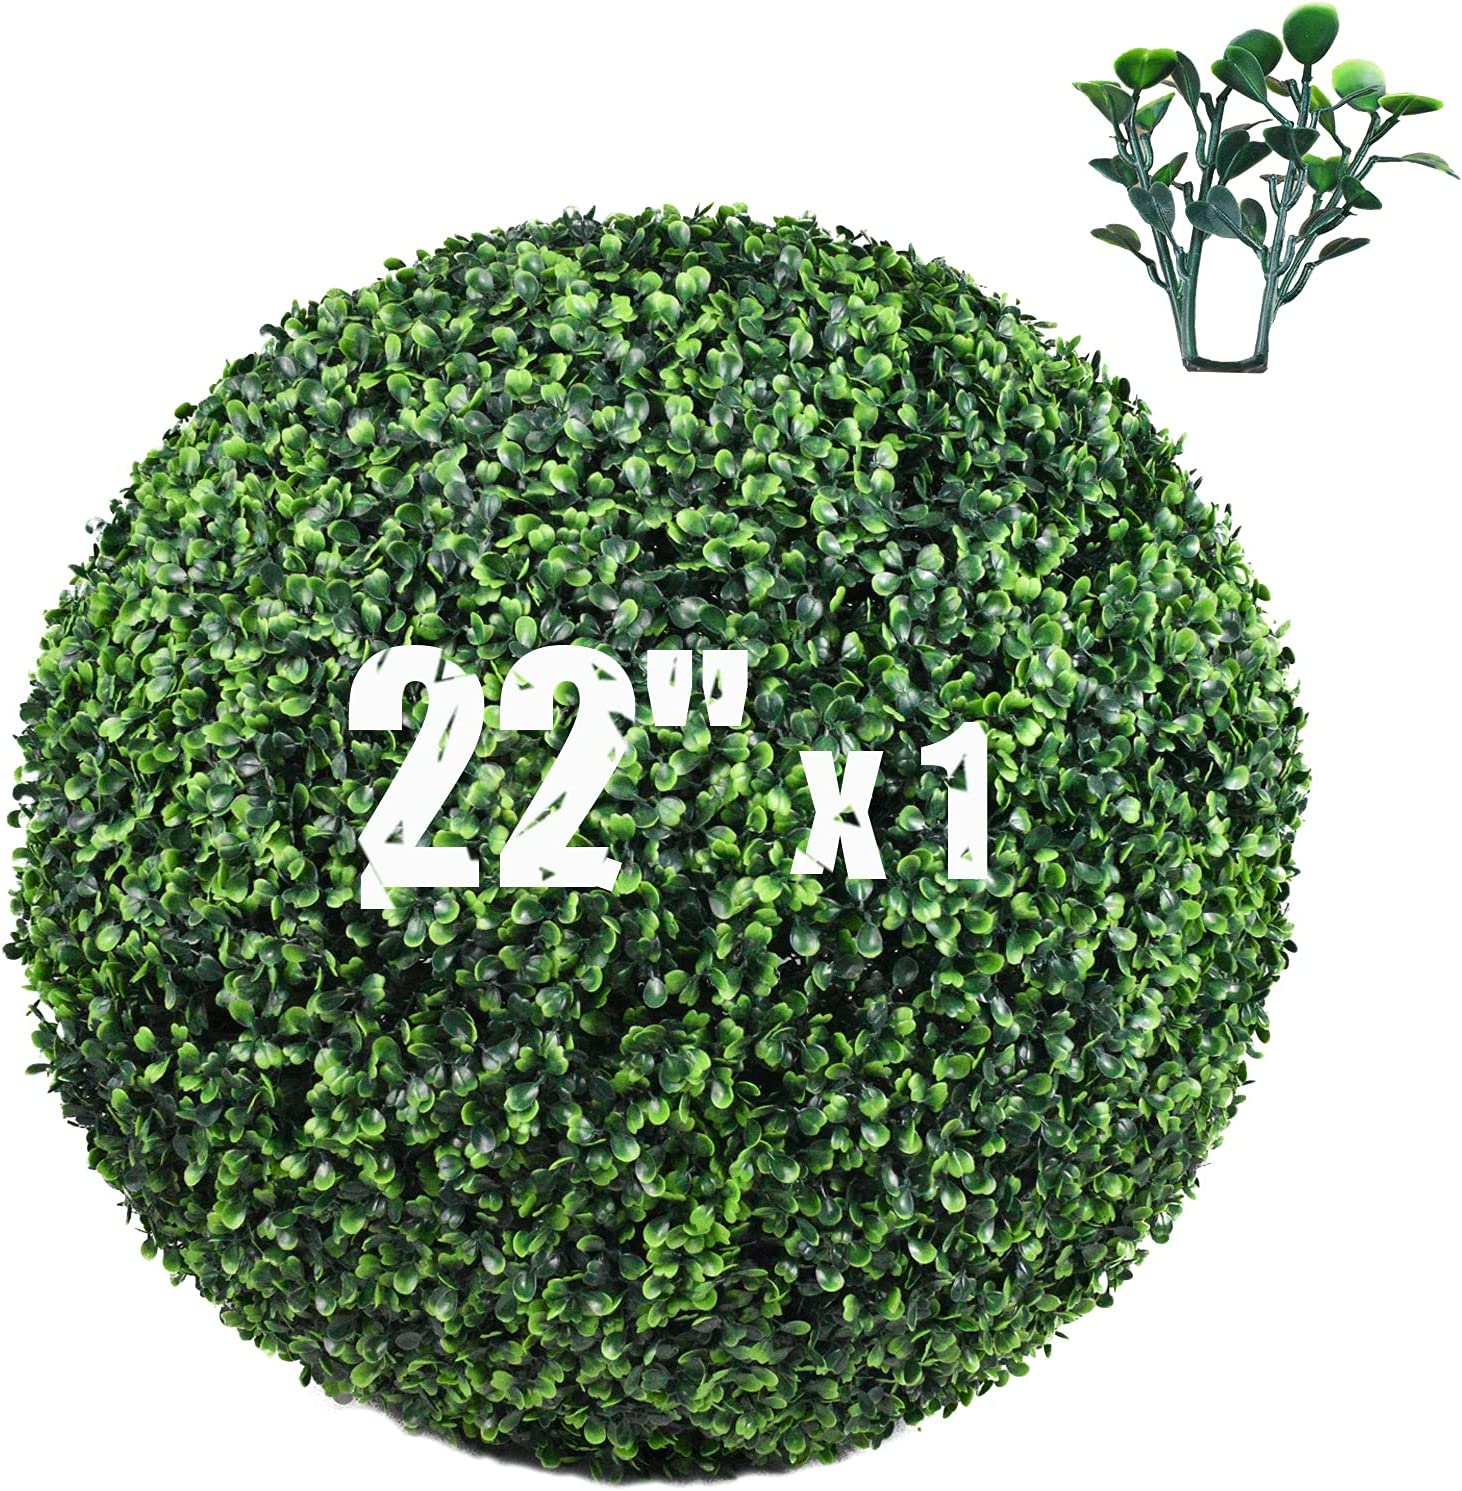 Hedge Maze 4 Layers Artificial Spring new work Pre-Assembl 2021 autumn and winter new Topiary Boxwood Ball